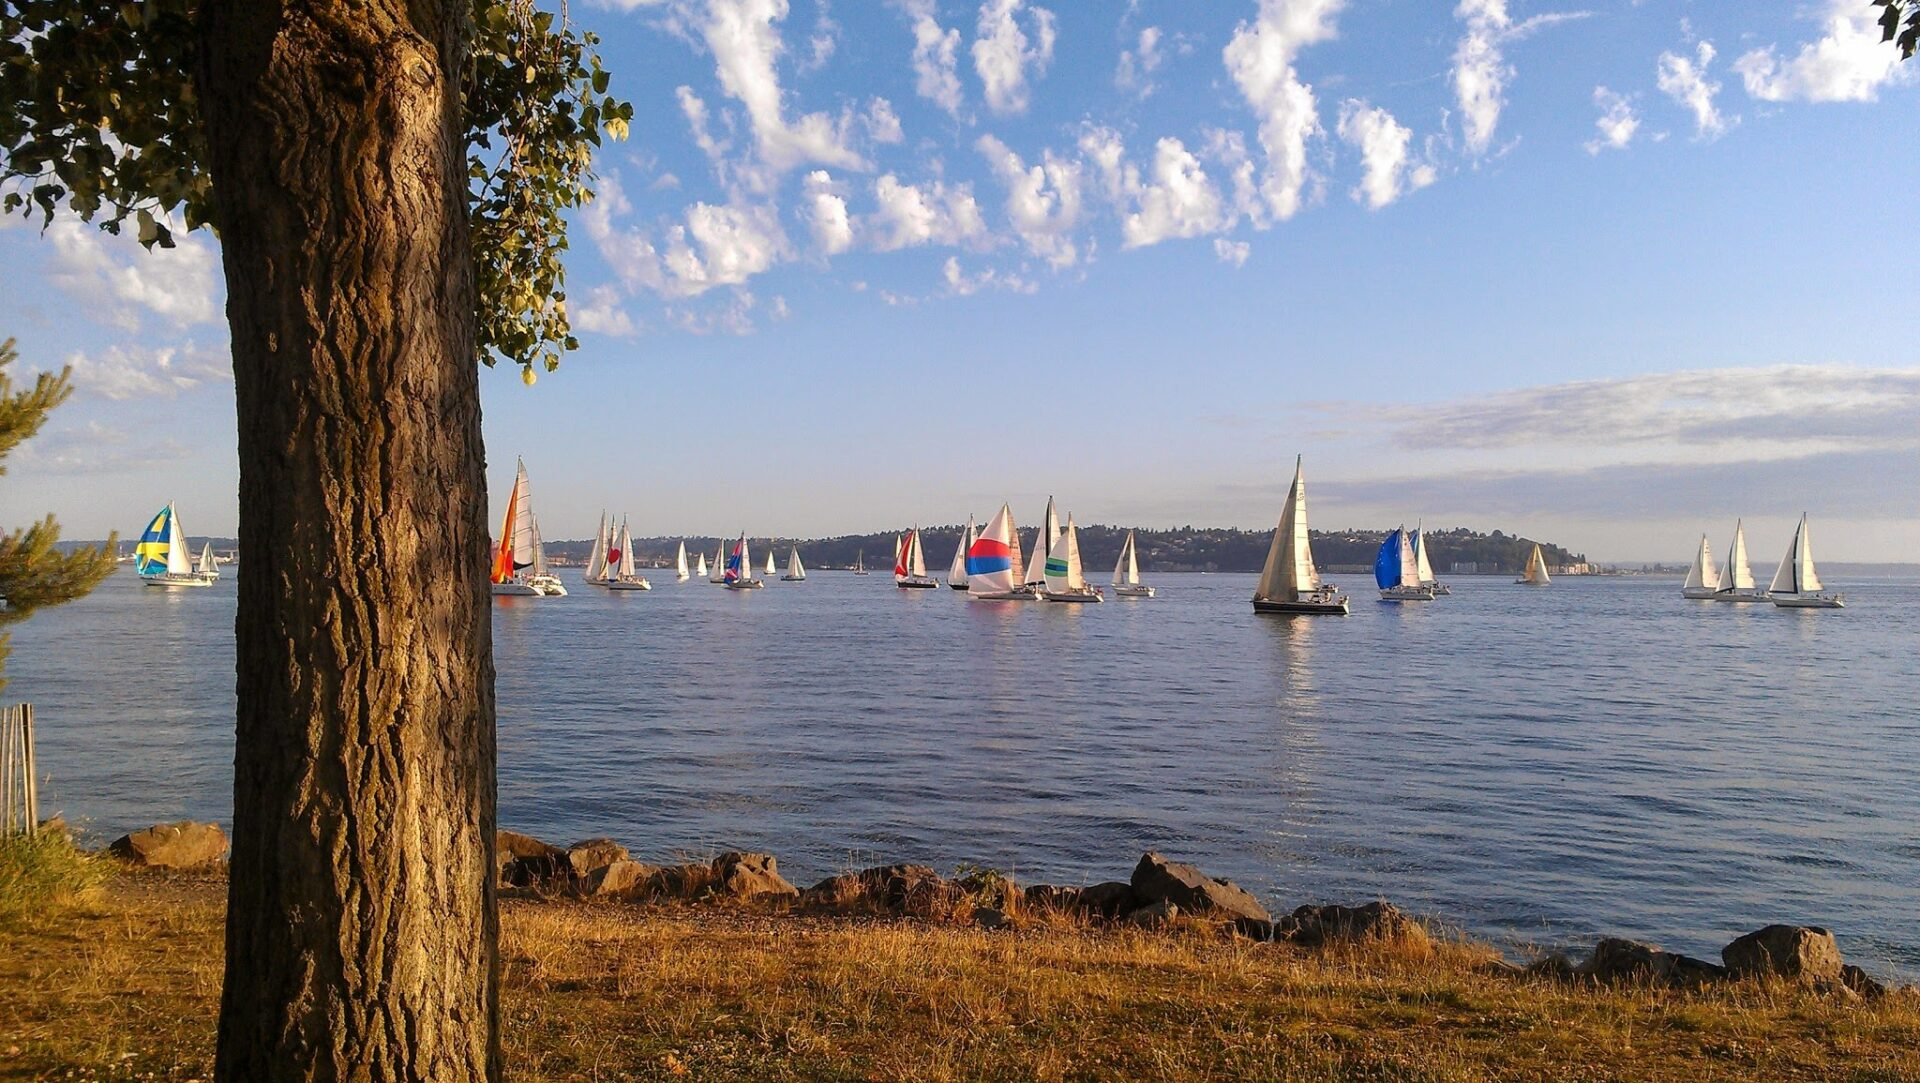 Dozens of sailboats in the water near the shore. It's evening light and there is a tree in the foreground